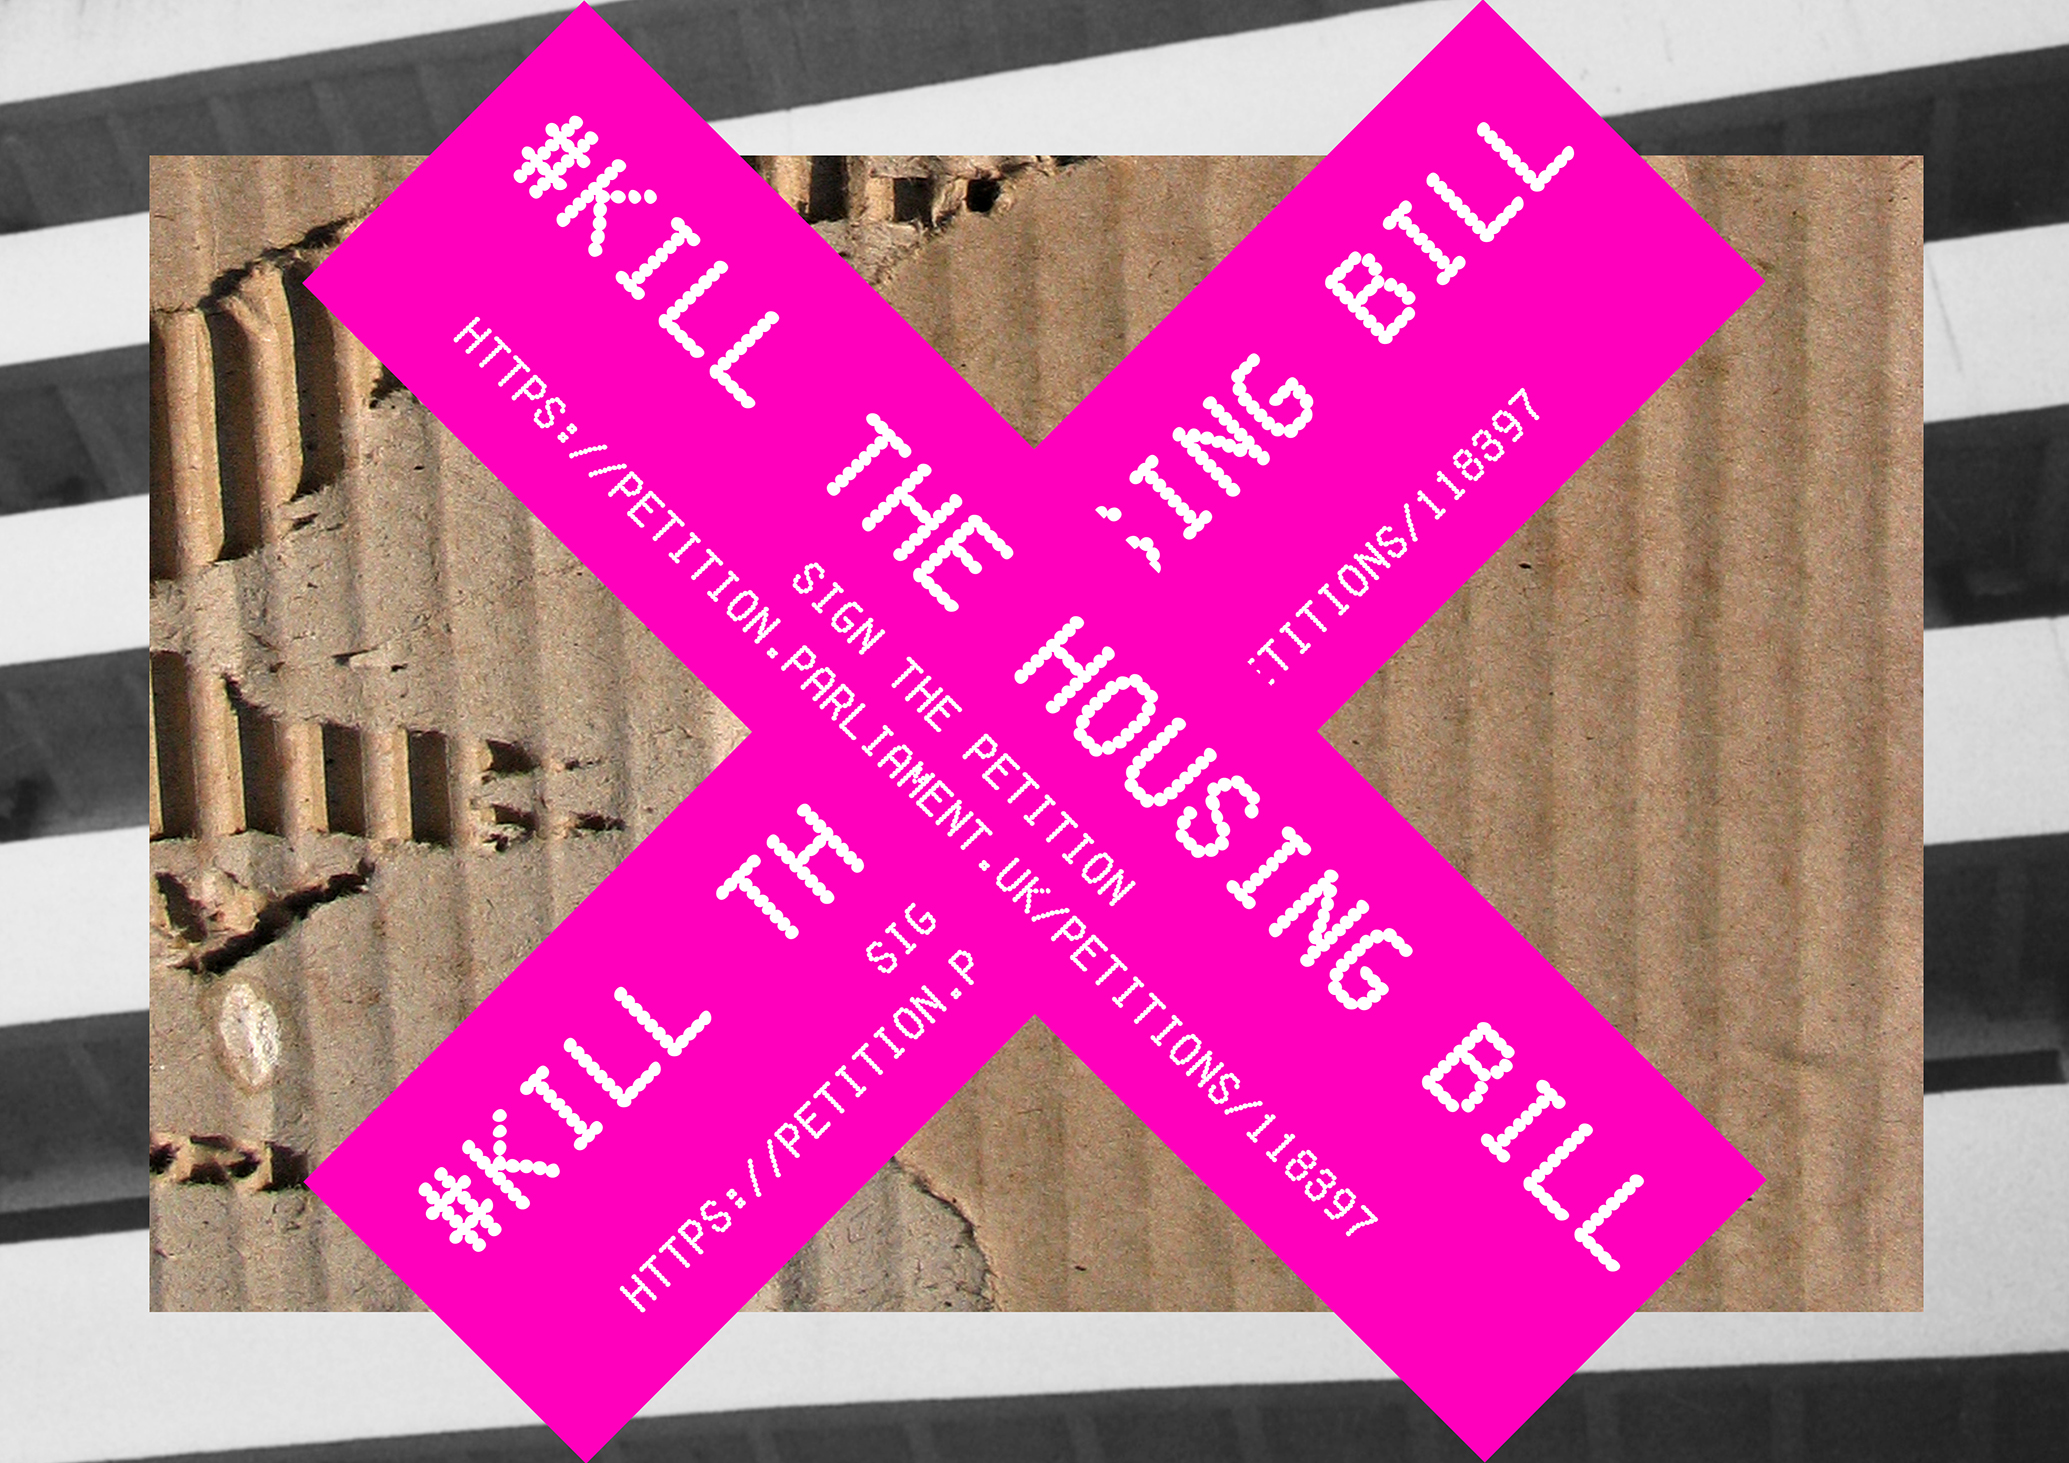 KILLTHEHOUSINGBILSNUFFCREATIVE2016-pink-LR.jpg